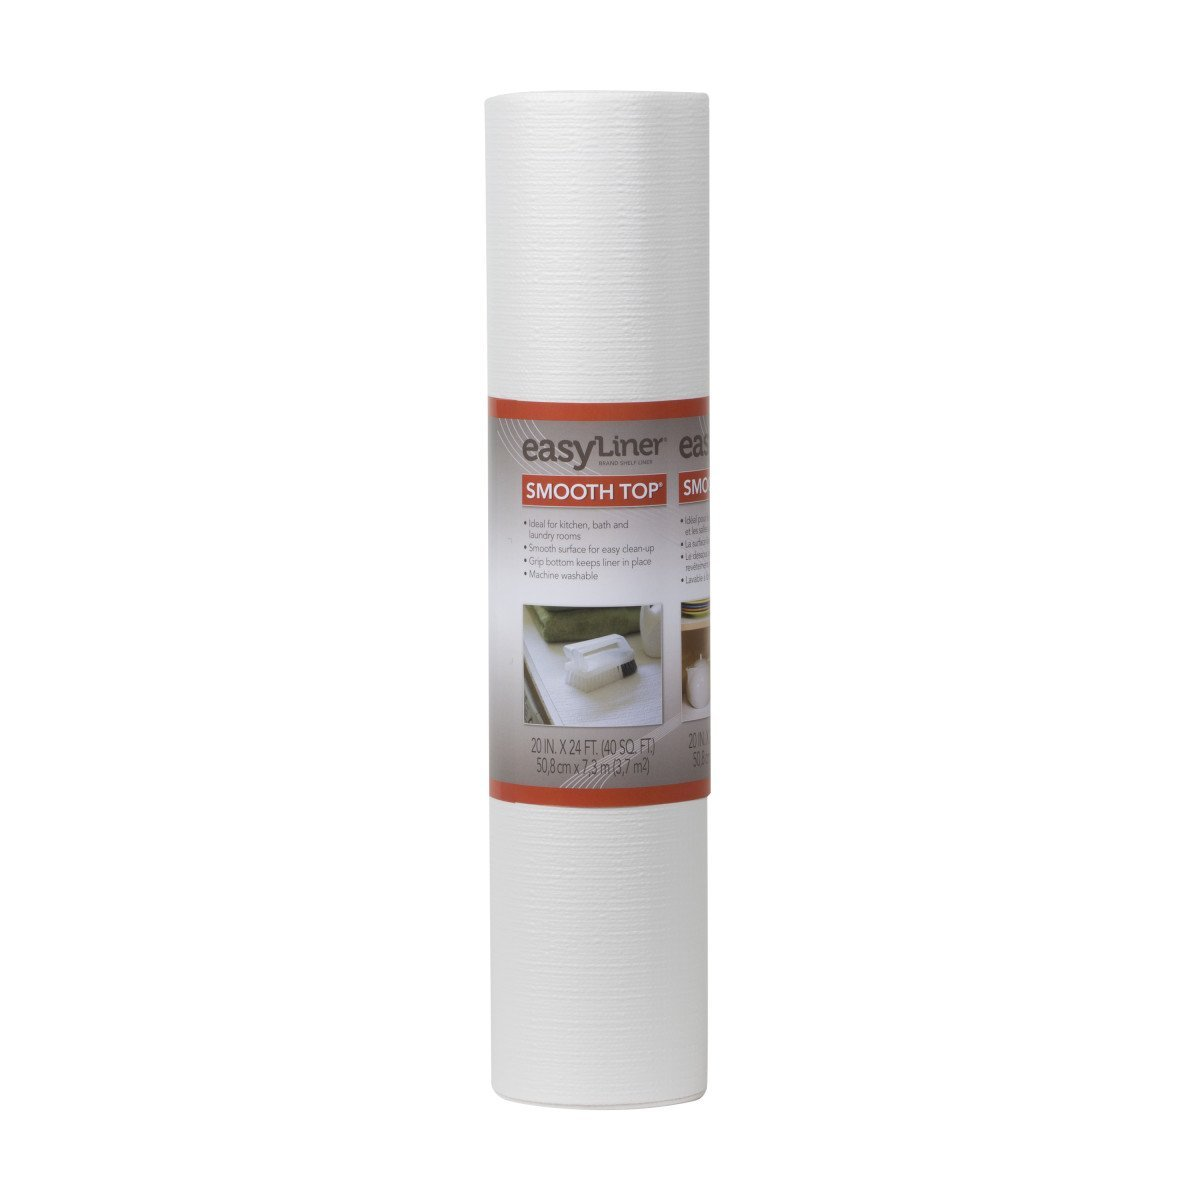 Duck Brand 281872 Smooth Top Easy Liner Non-Adhesive Shelf Liner, 20-Inch x 24-Feet, White